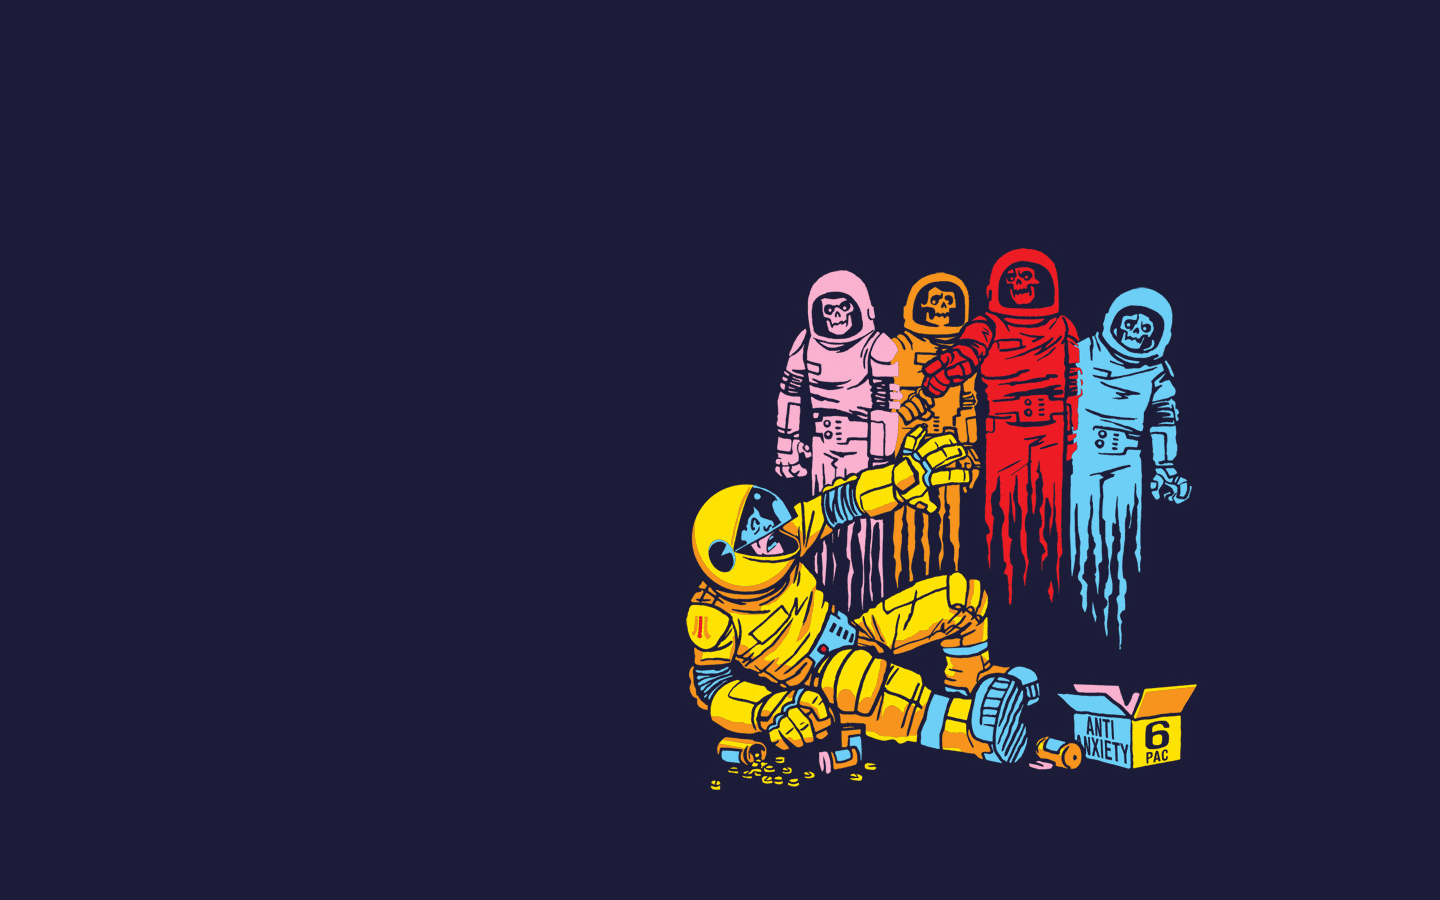 1440x900 Alternative Art Comics Drawings Funny Ghosts Outer Space Pac Man